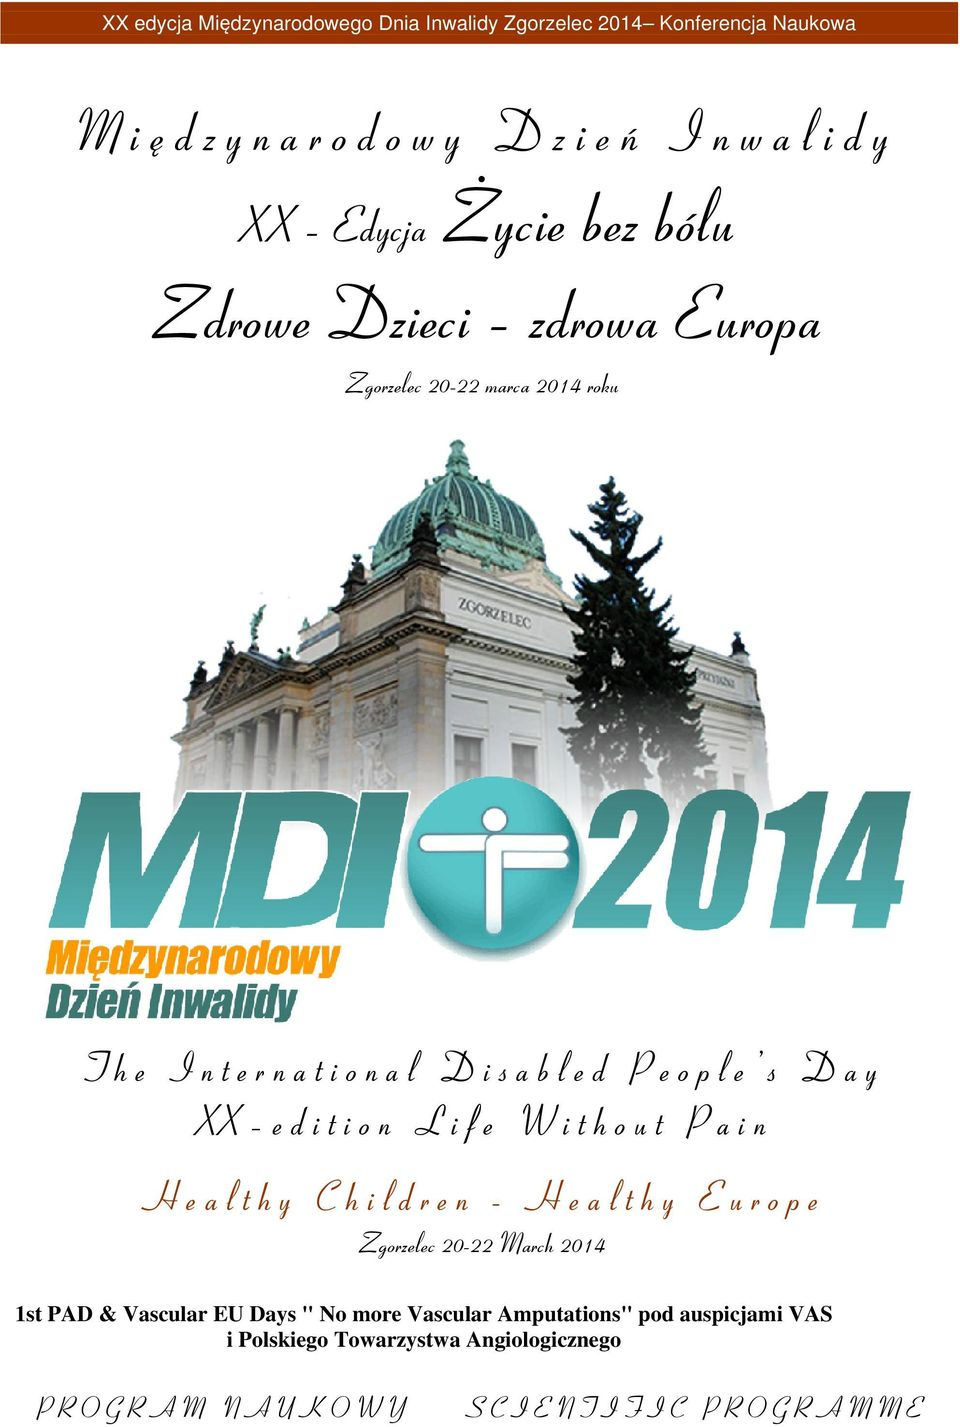 "Children - Healthy Europe Zgorzelec 20-22 March 2014 1st PAD & Vascular EU Days "" No more Vascular"